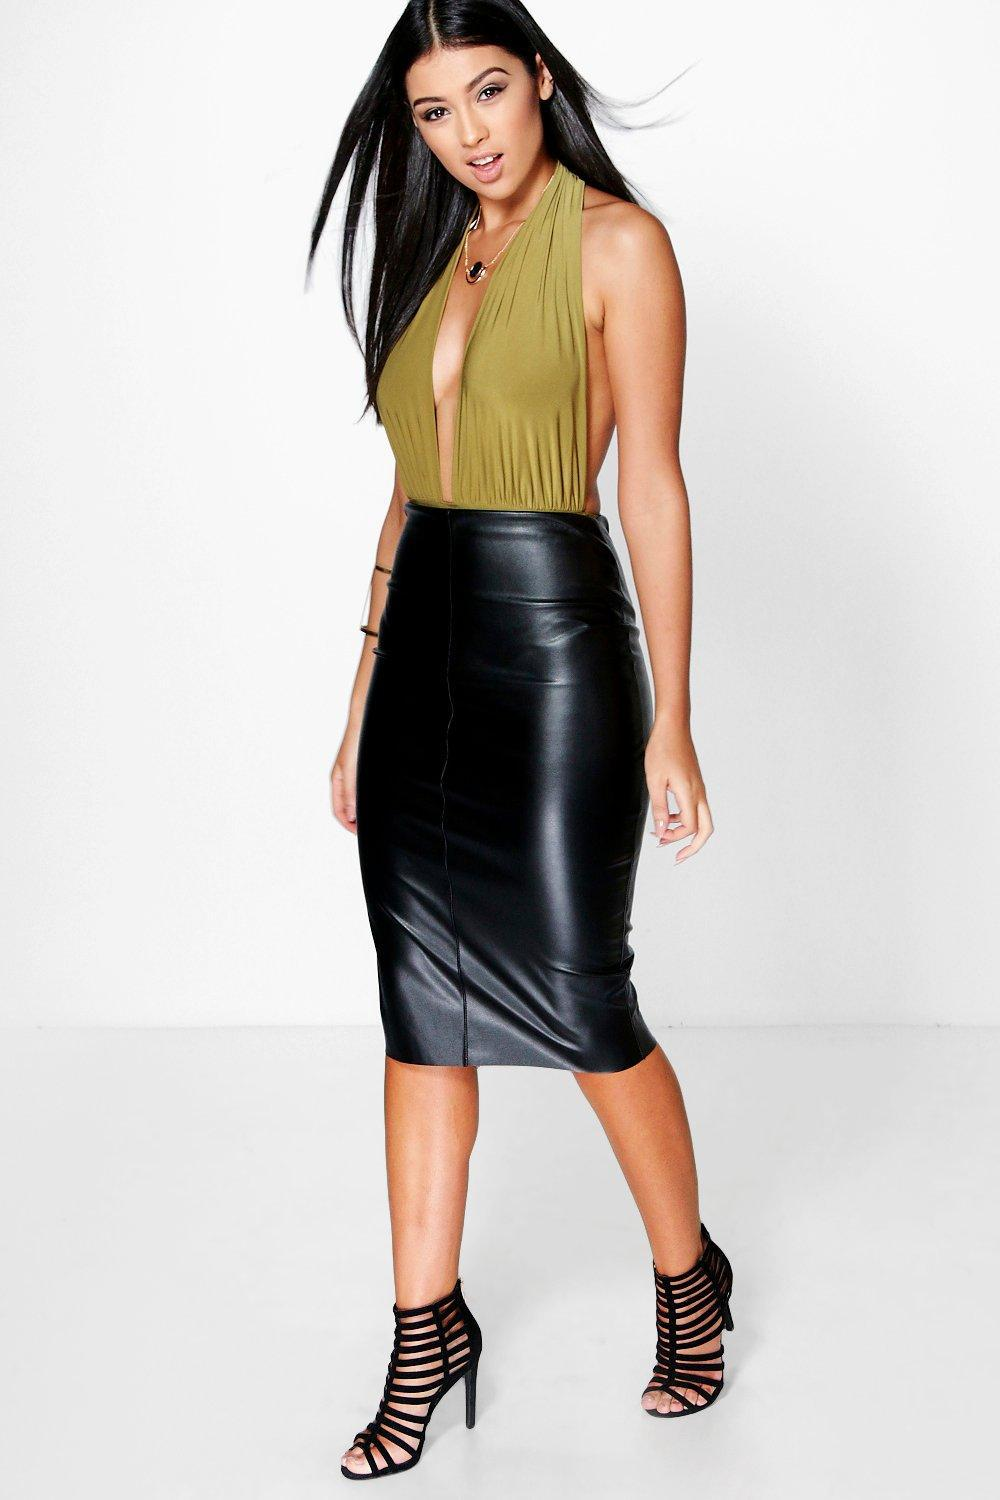 93afba83db Roza Coated Leather Look Skater Skirt – DACC